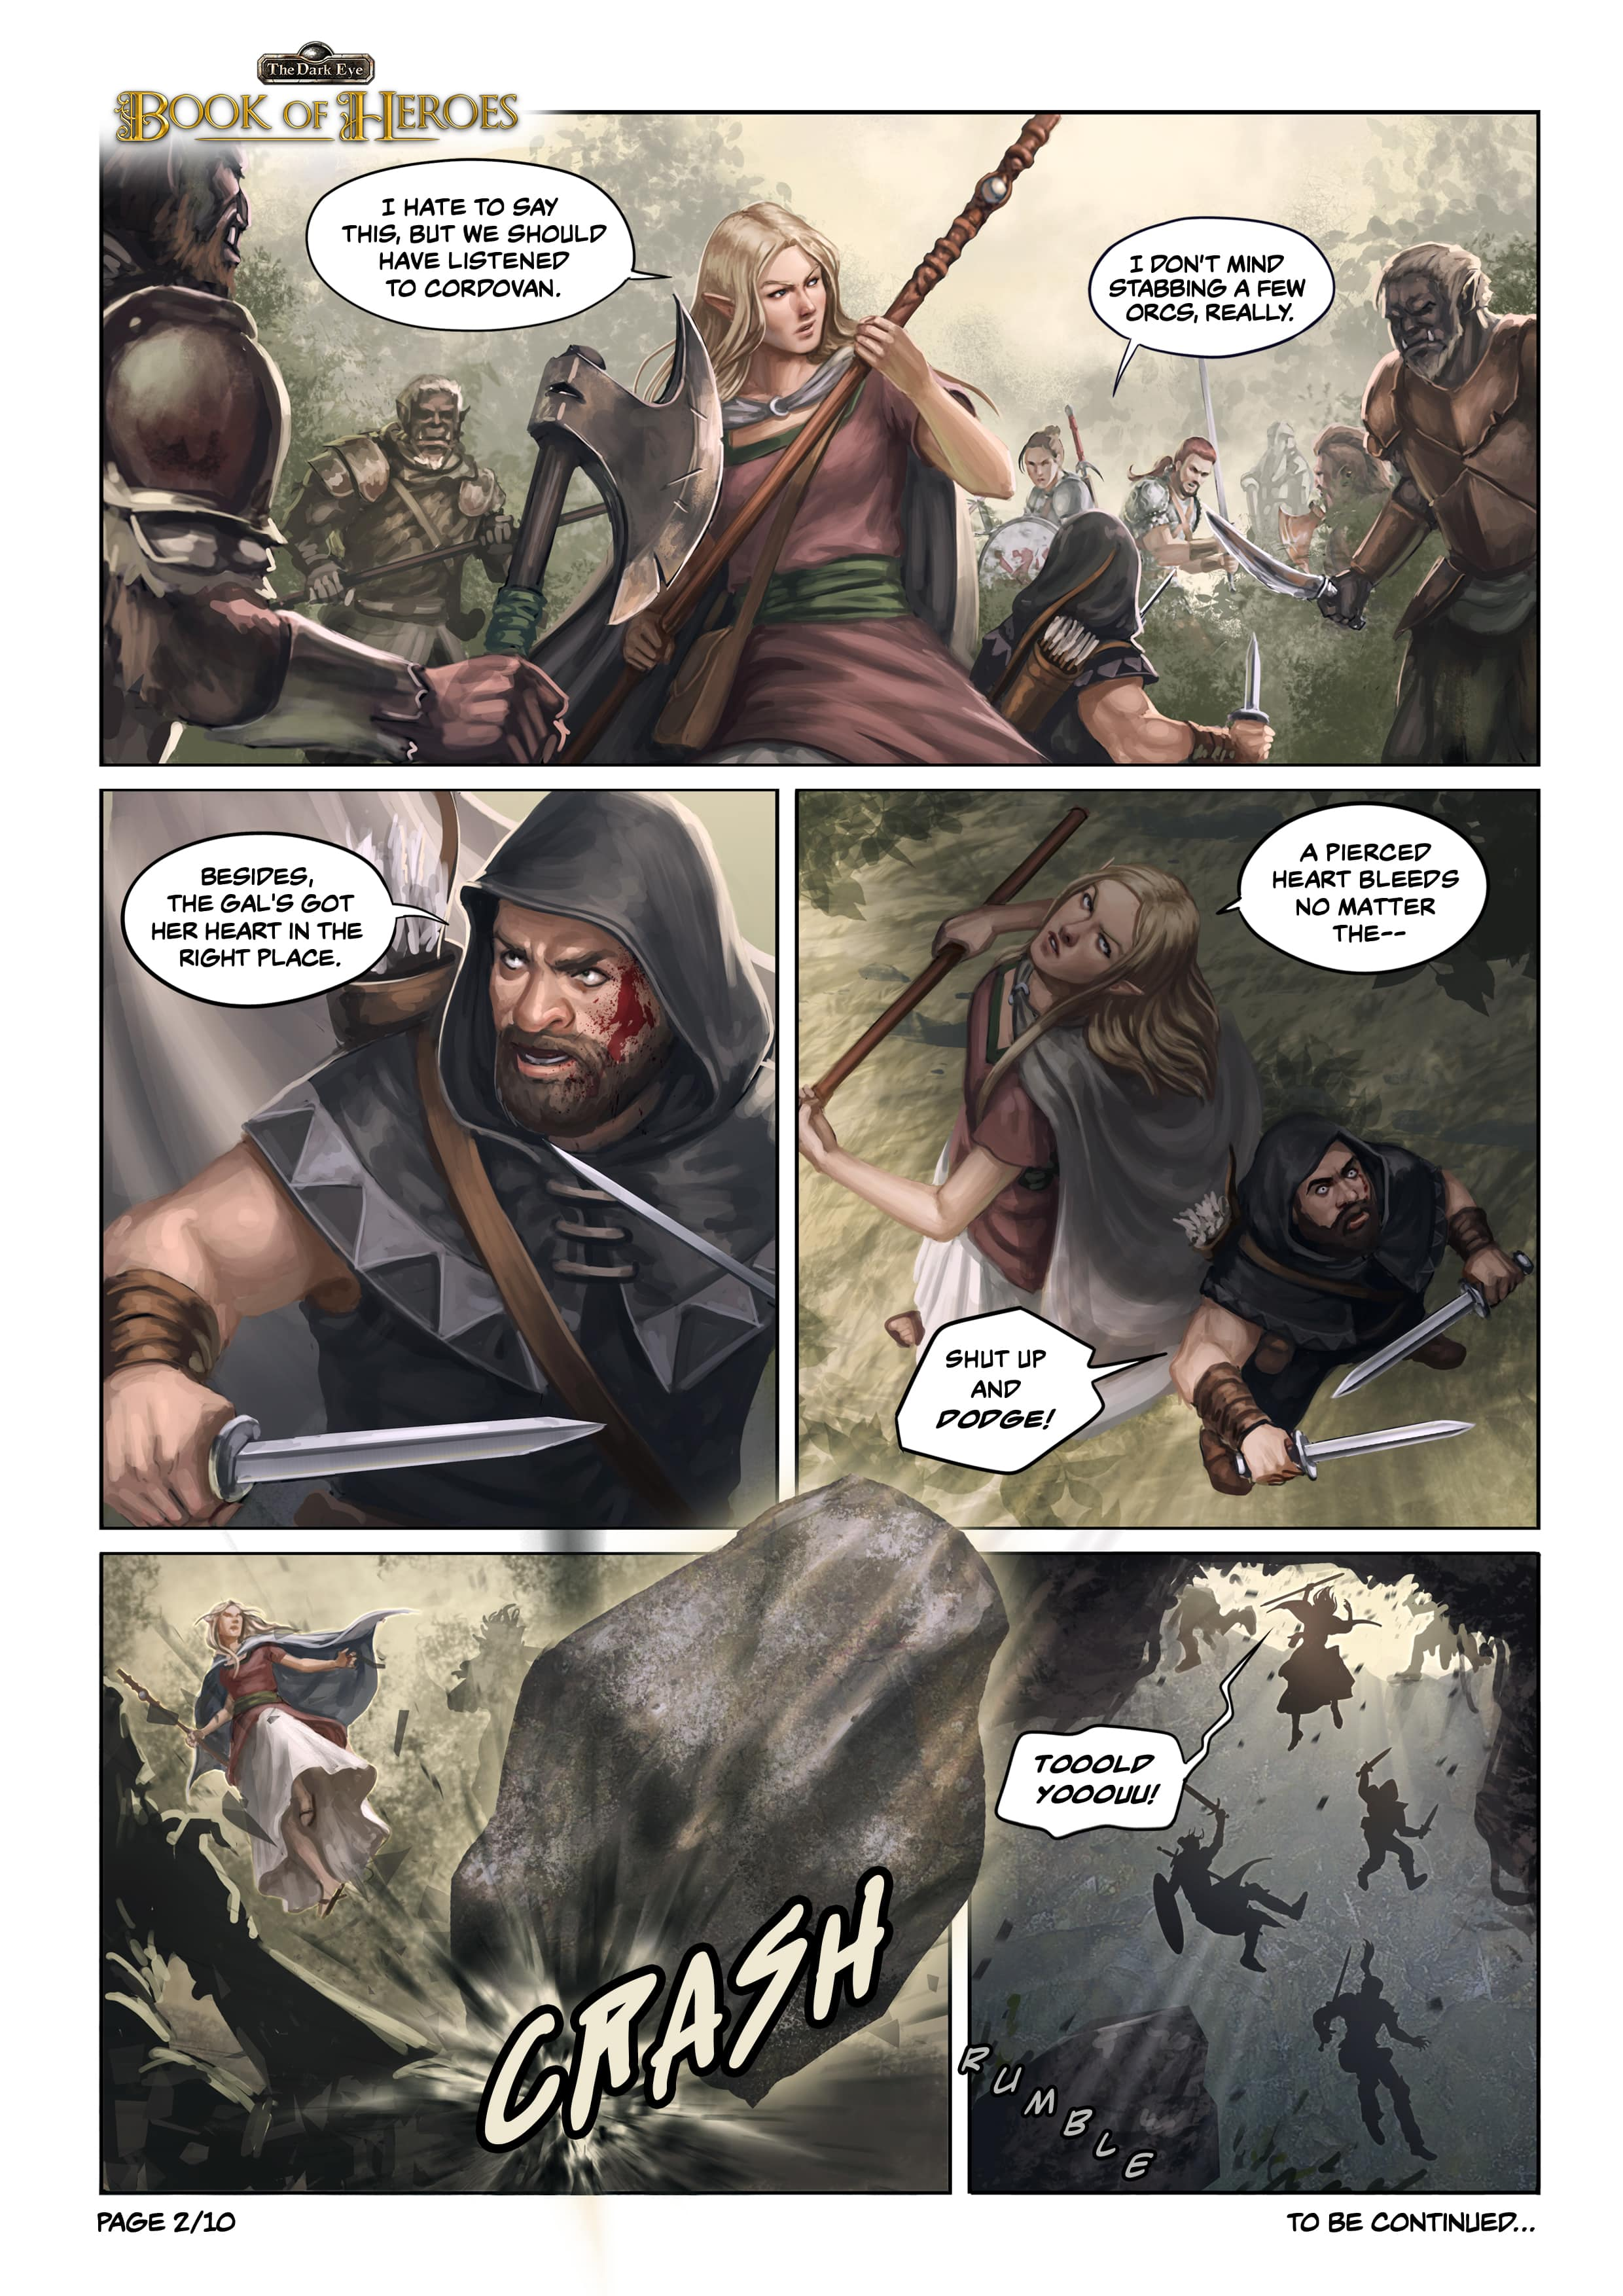 Book of Heroes Chapter 1 Page 2